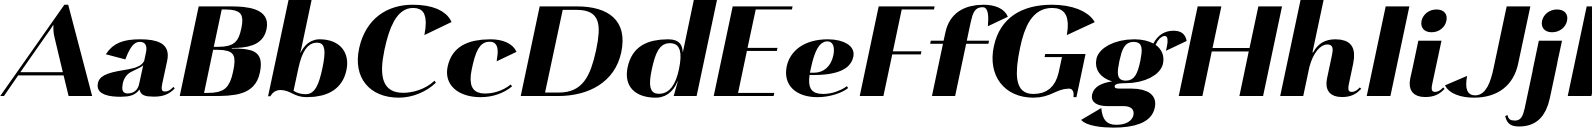 Grenale Norm Heavy Italic Font